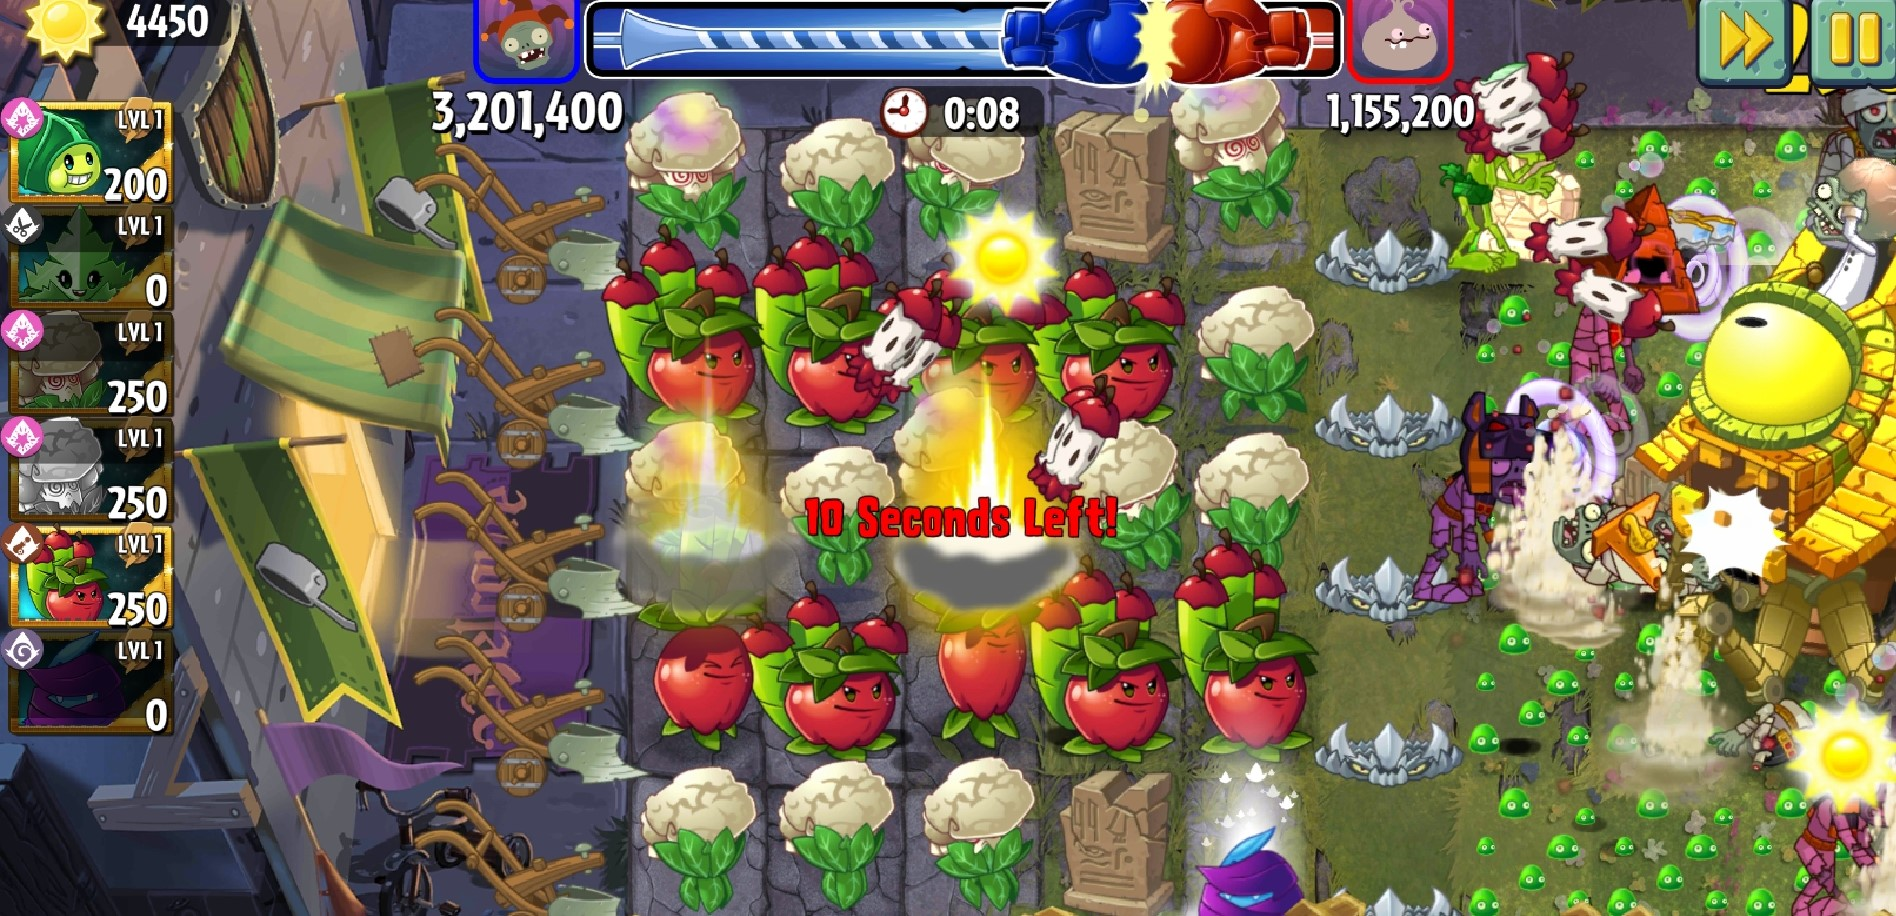 Screenshot_PvZ_layout level 1 plants.jpg